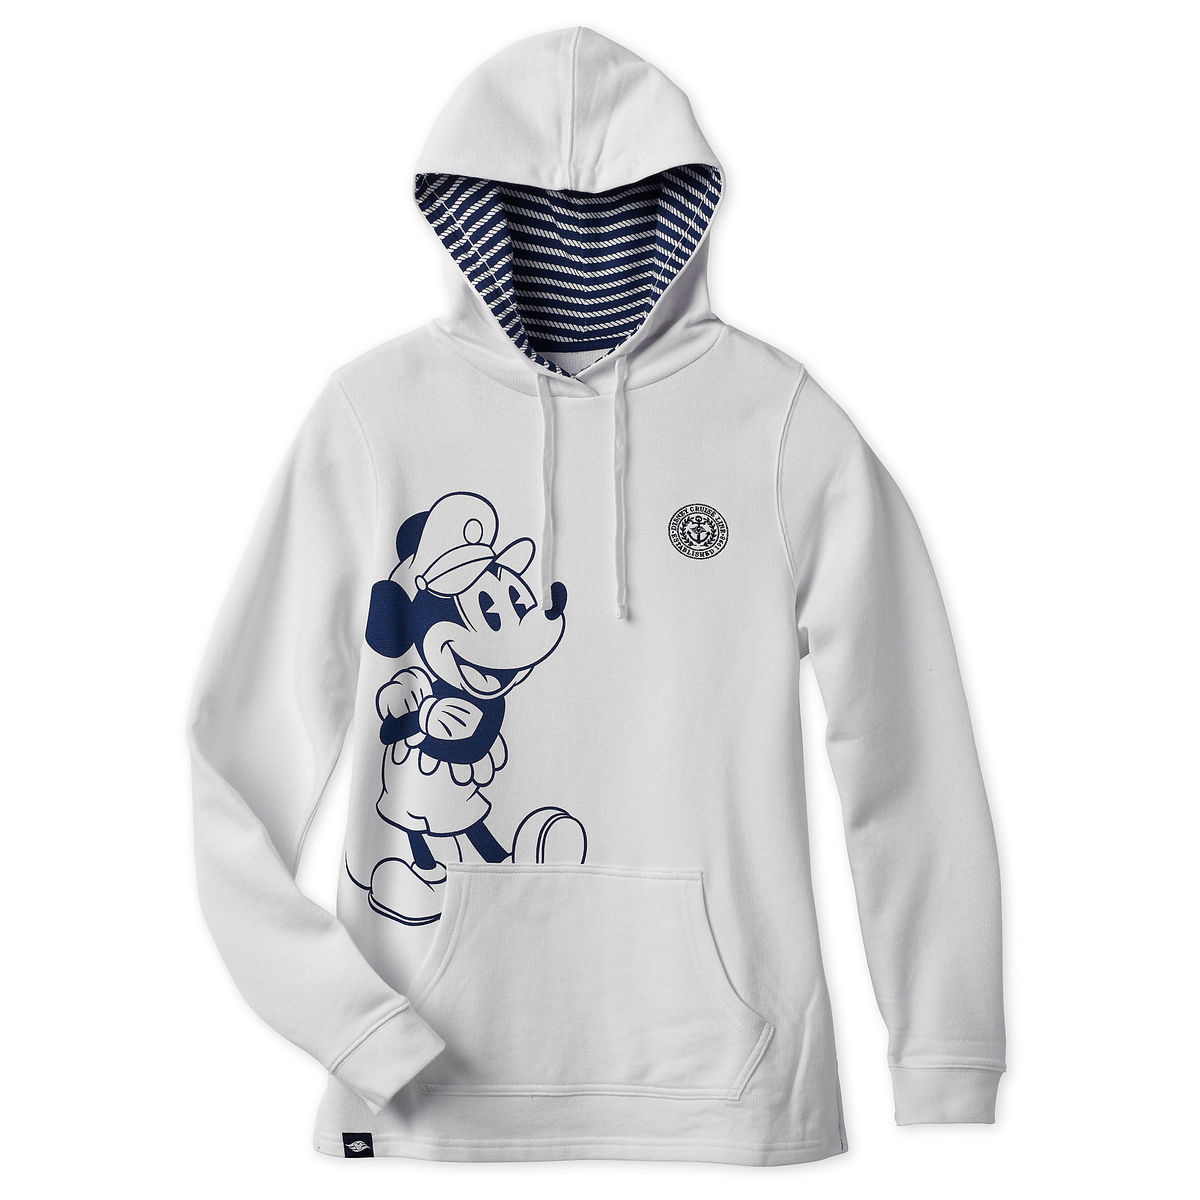 1e18122309e Product Image of Mickey Mouse Pullover Hoodie for Women - Disney Cruise  Line   1